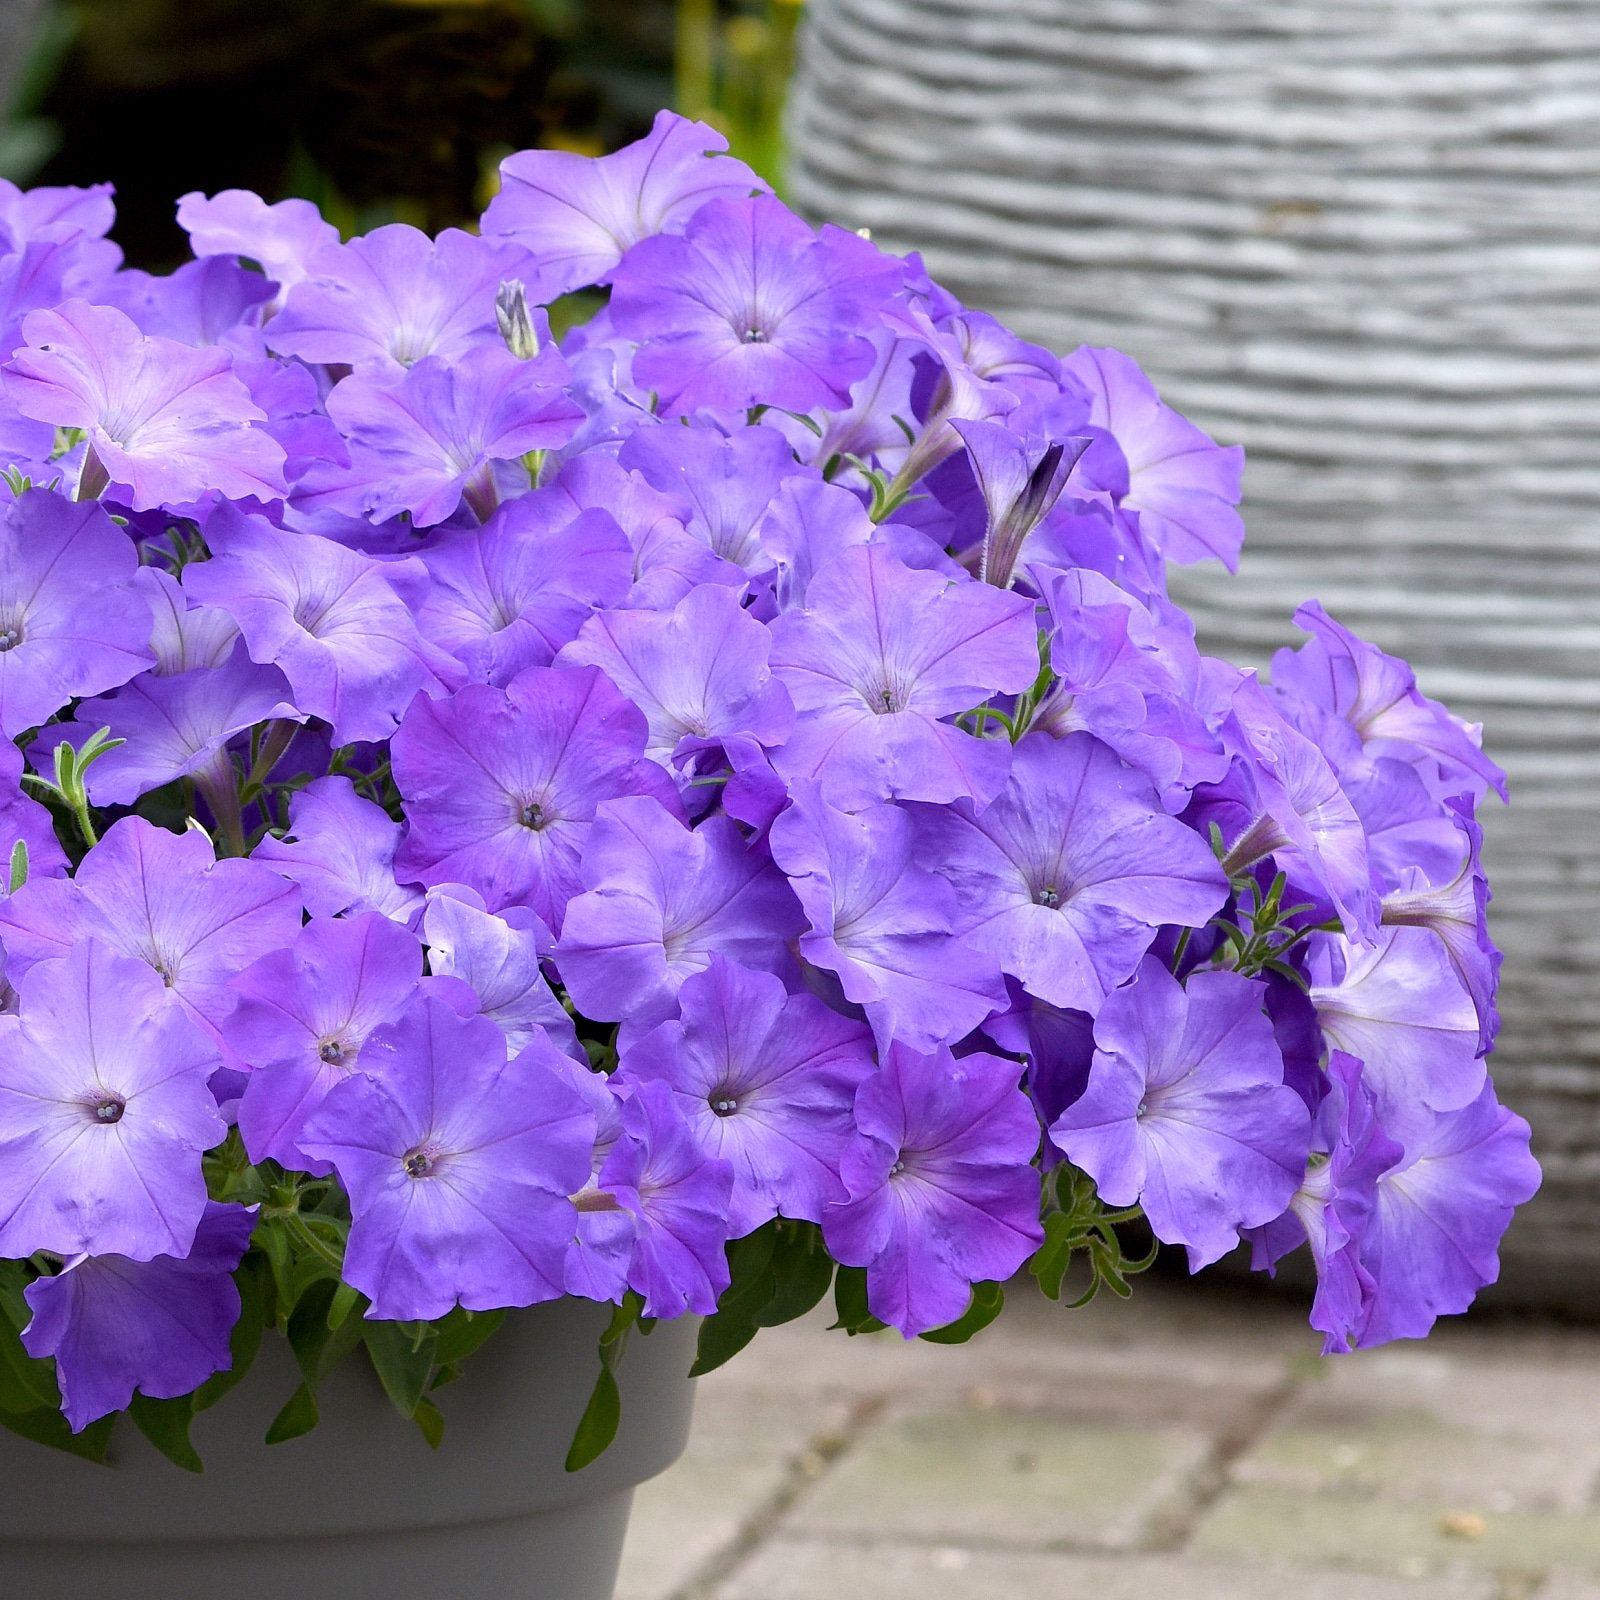 Easy Wave Lavender Sky Blue 25 Pelleted Seeds Pelleted Petunia Seeds In 2020 Petunia Flower Easy Waves Petunias